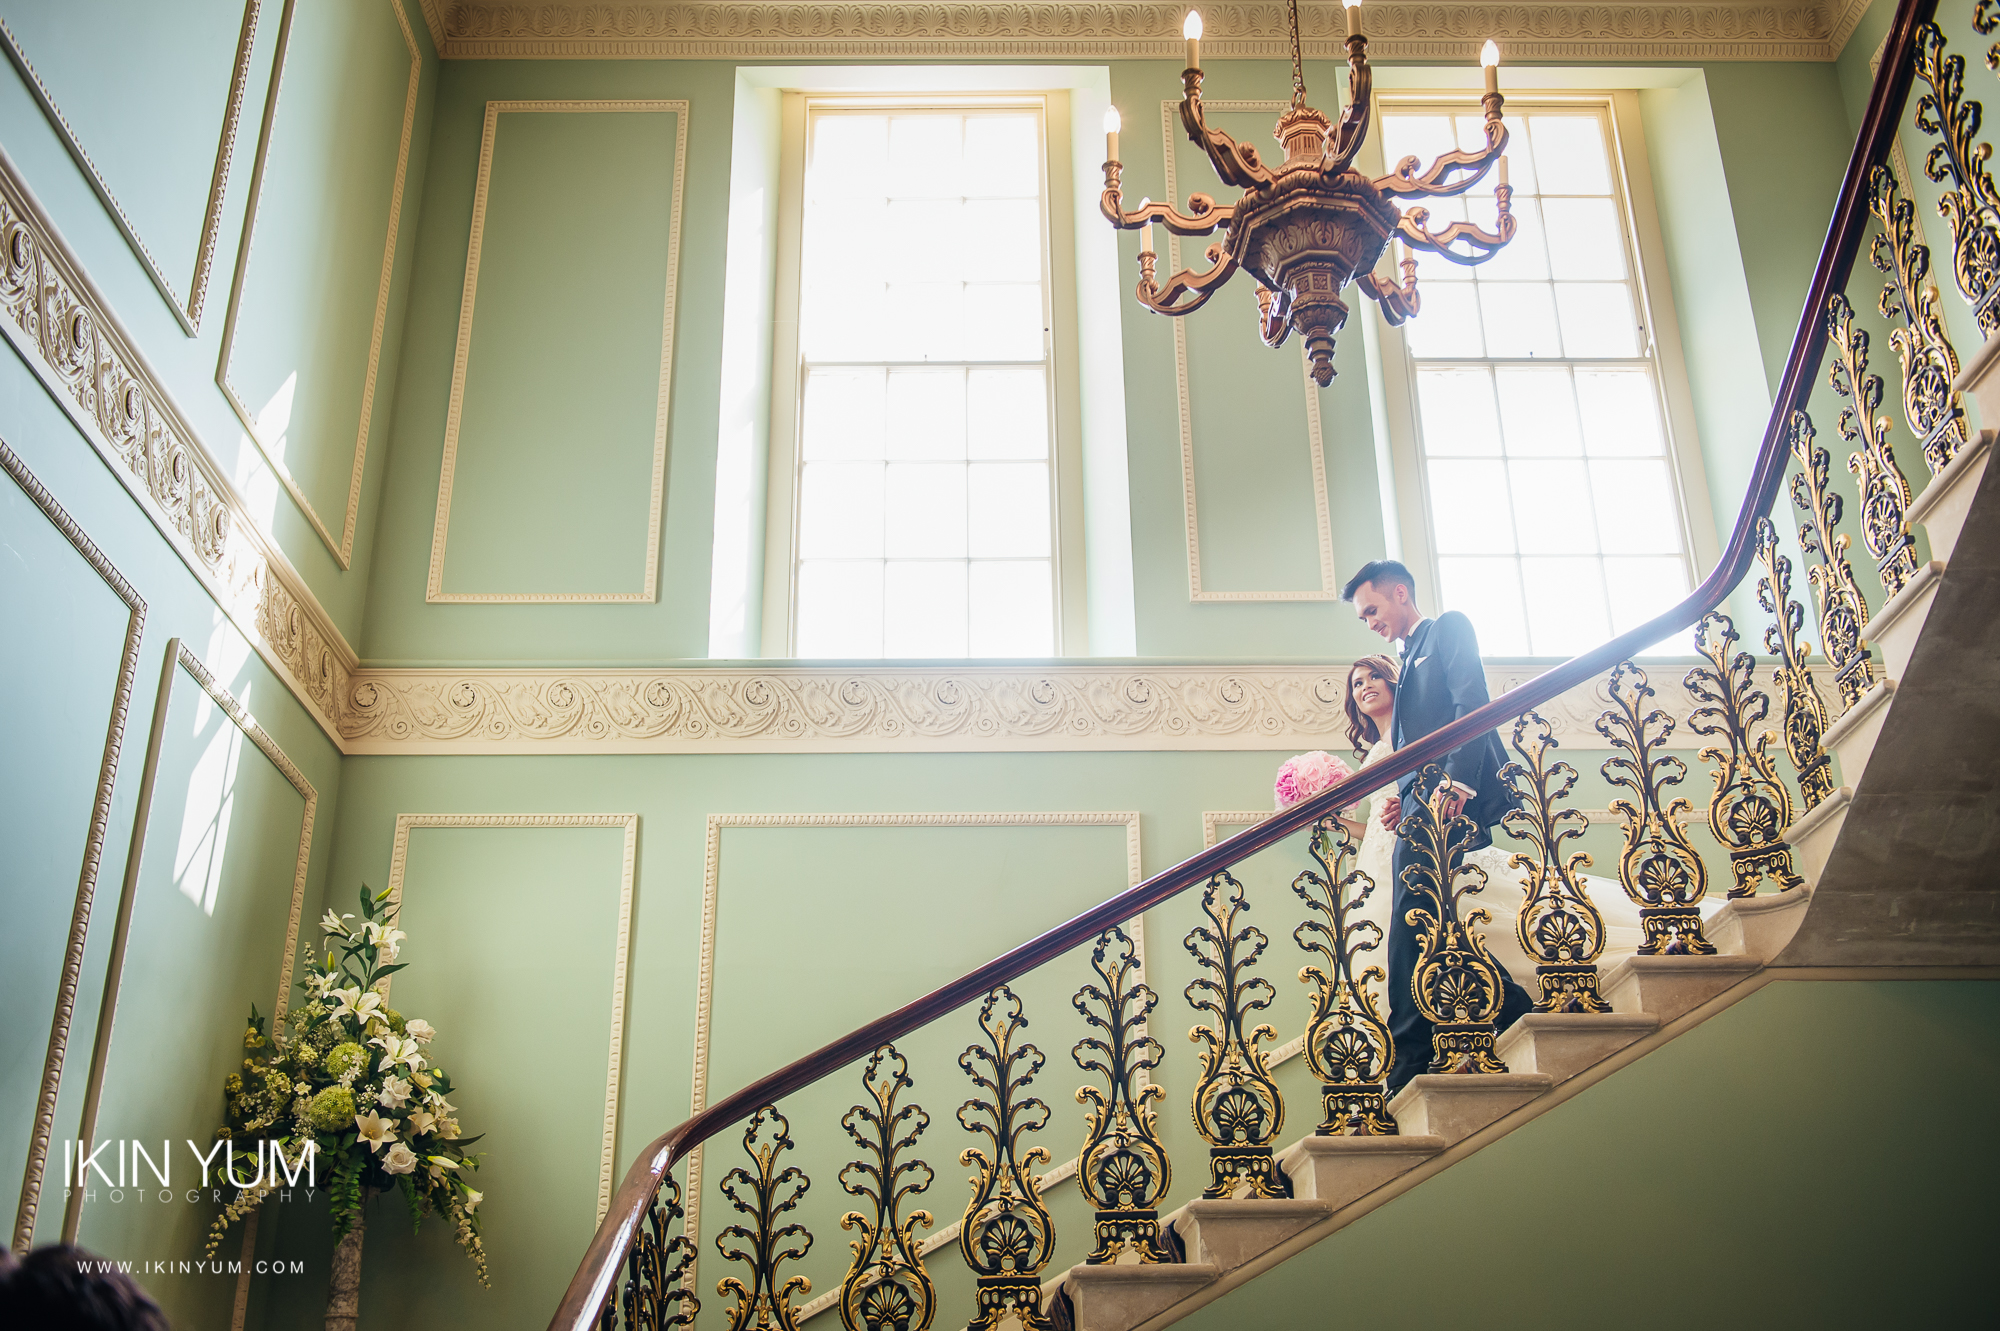 Hylands House Wedding - Ikin Yum Photography-096.jpg